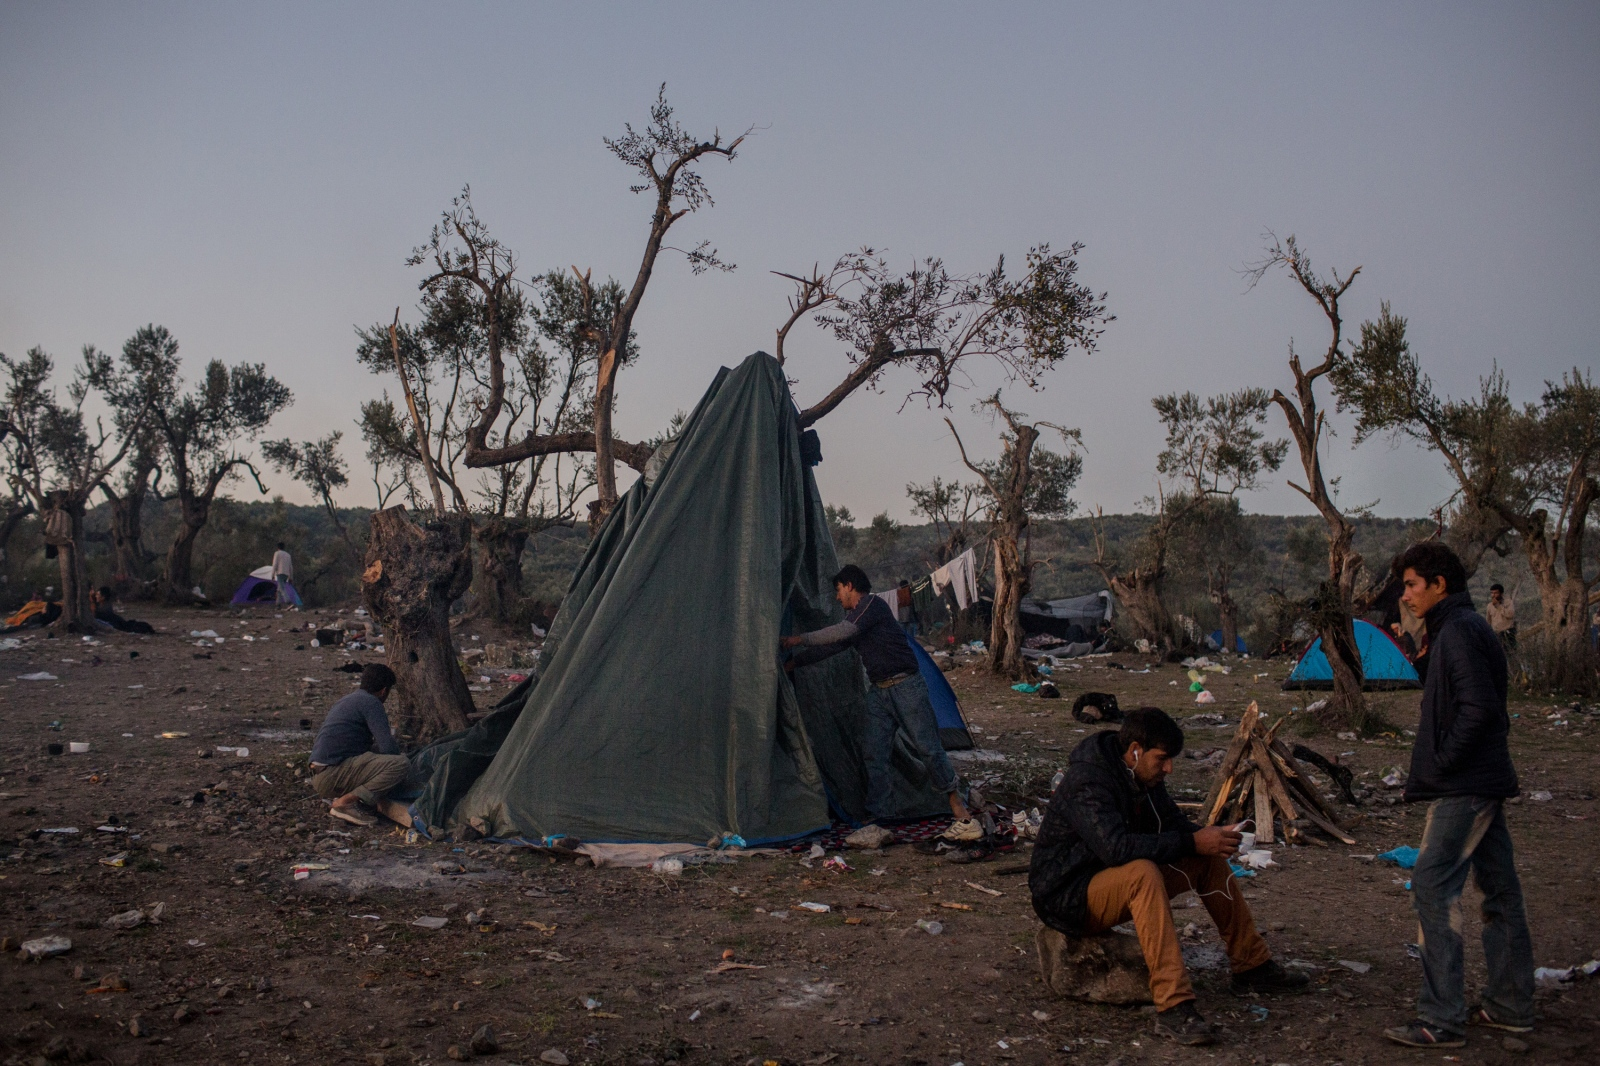 Refugees prepare to camp in the open near a registration center at the Moria transit camp in Lesbos, Greece, on November 13, 2015.